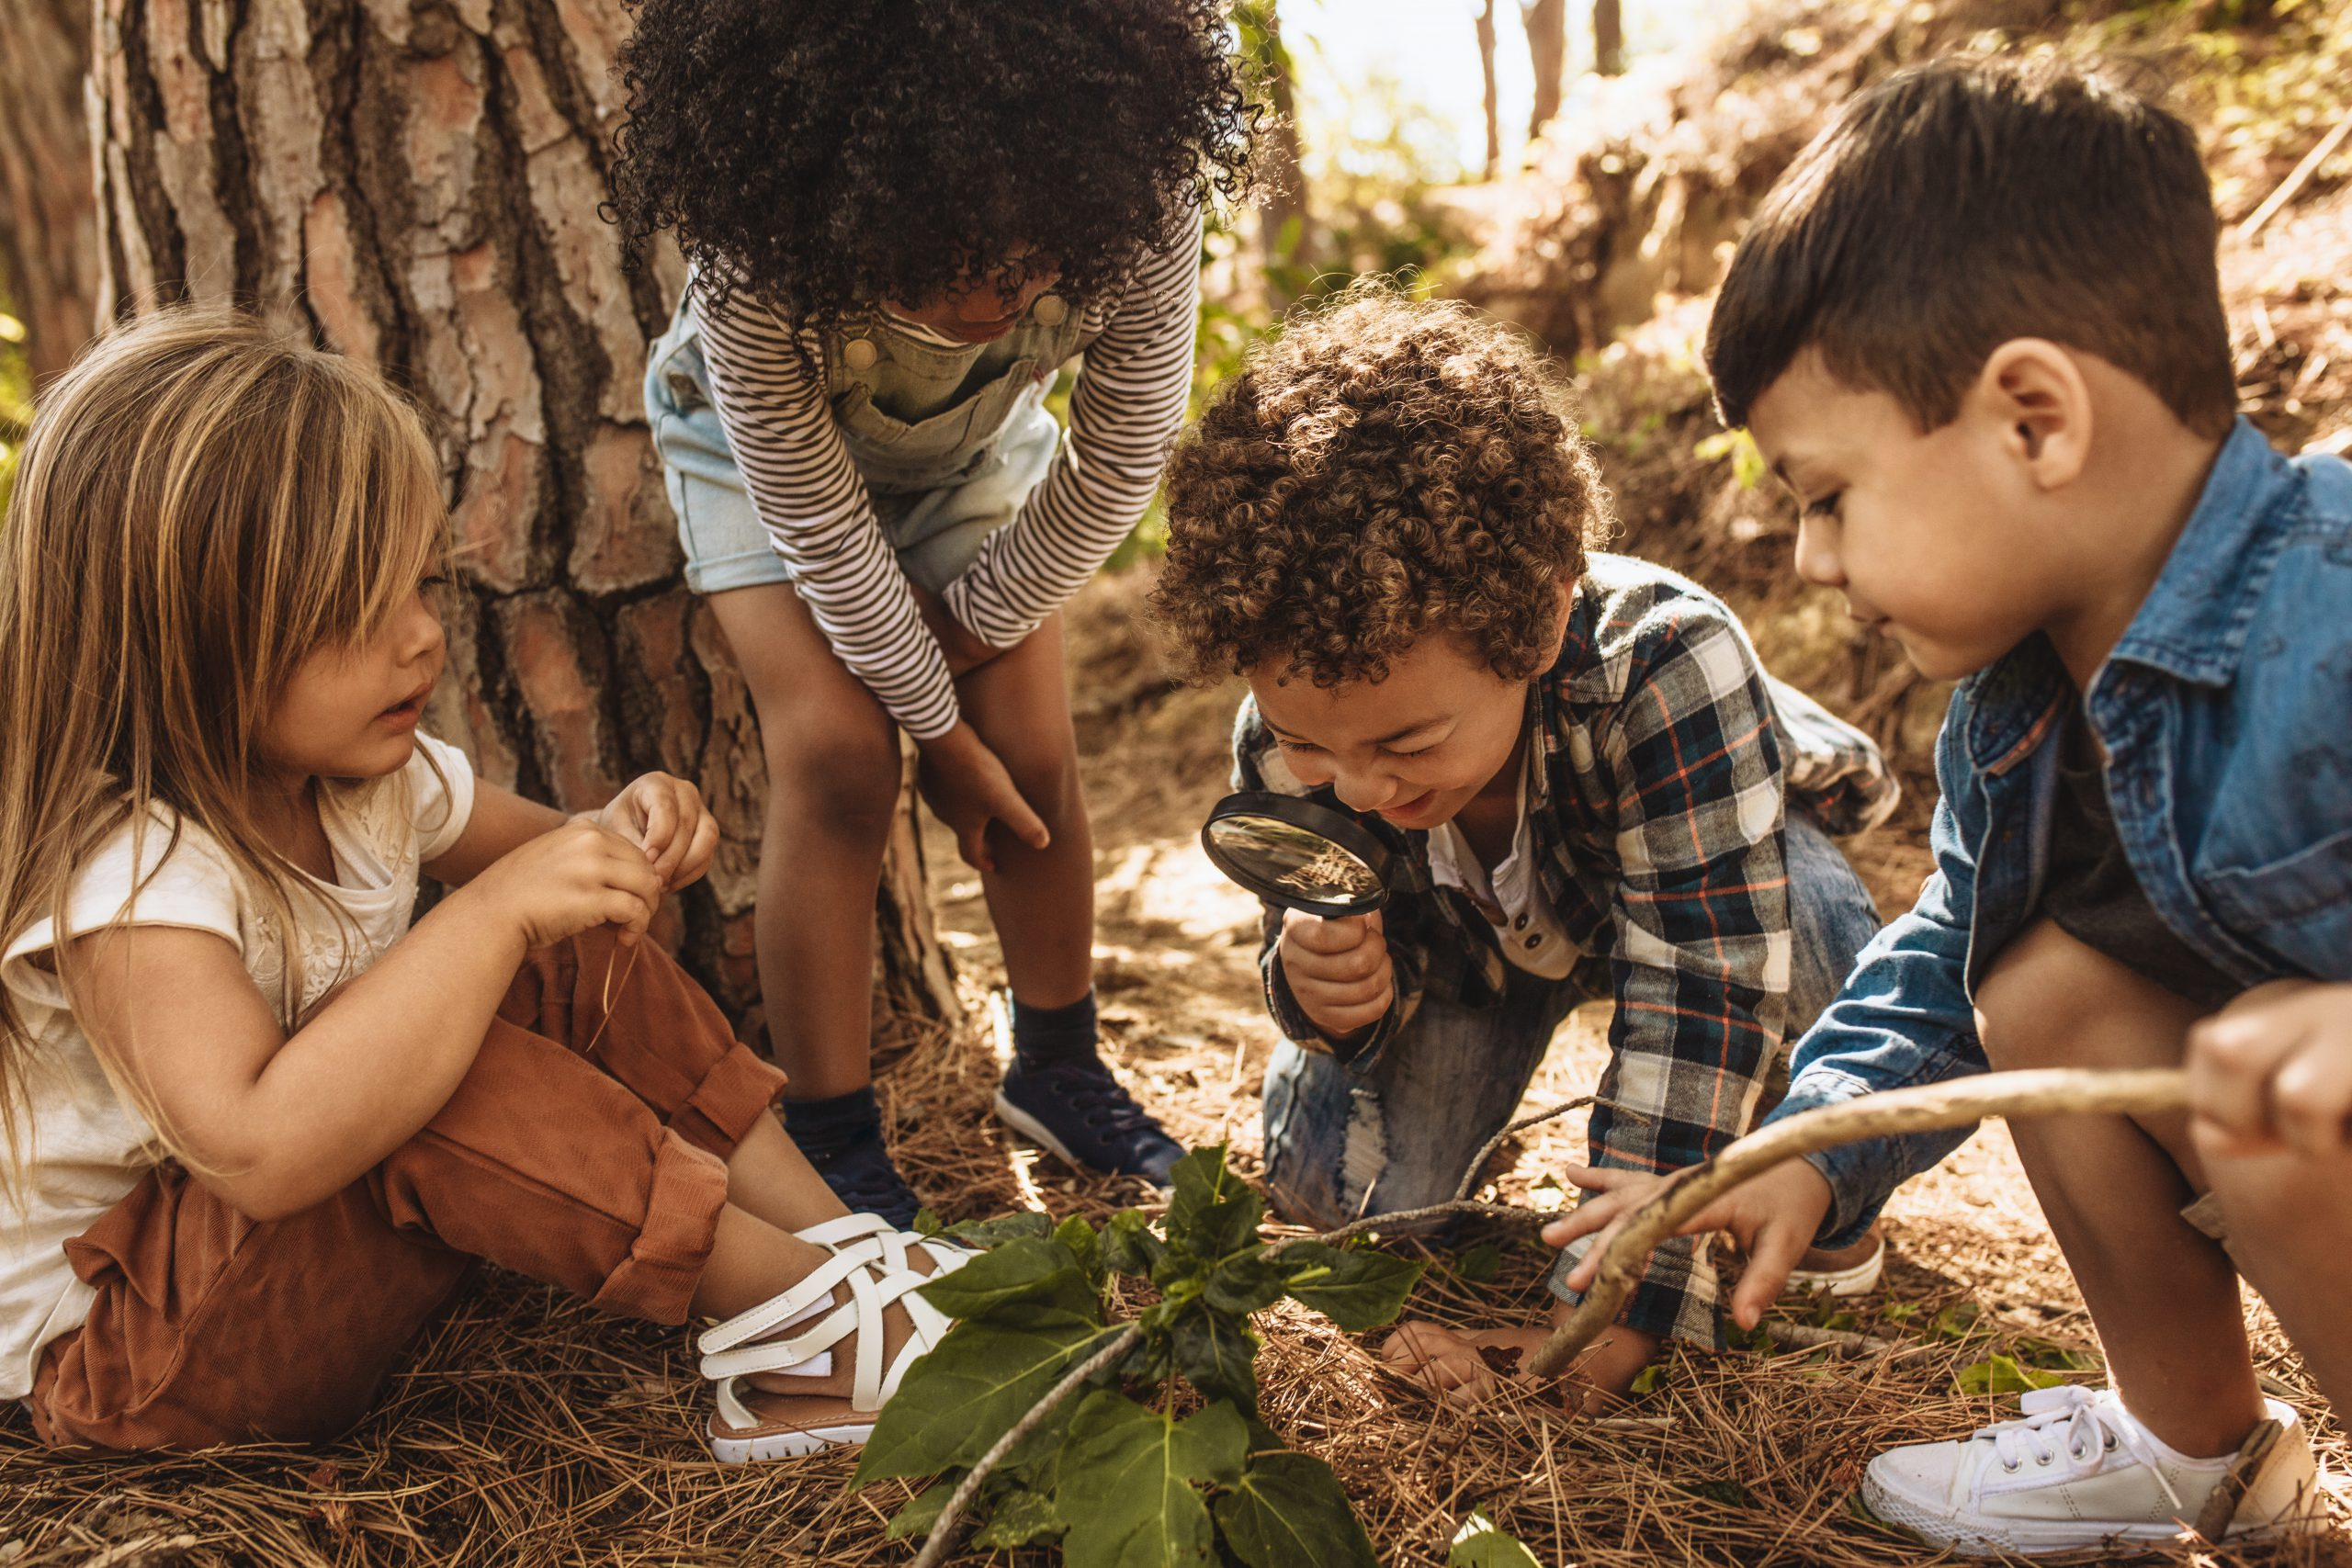 Children in forest looking at leaves as a researcher together with the magnifying glass.